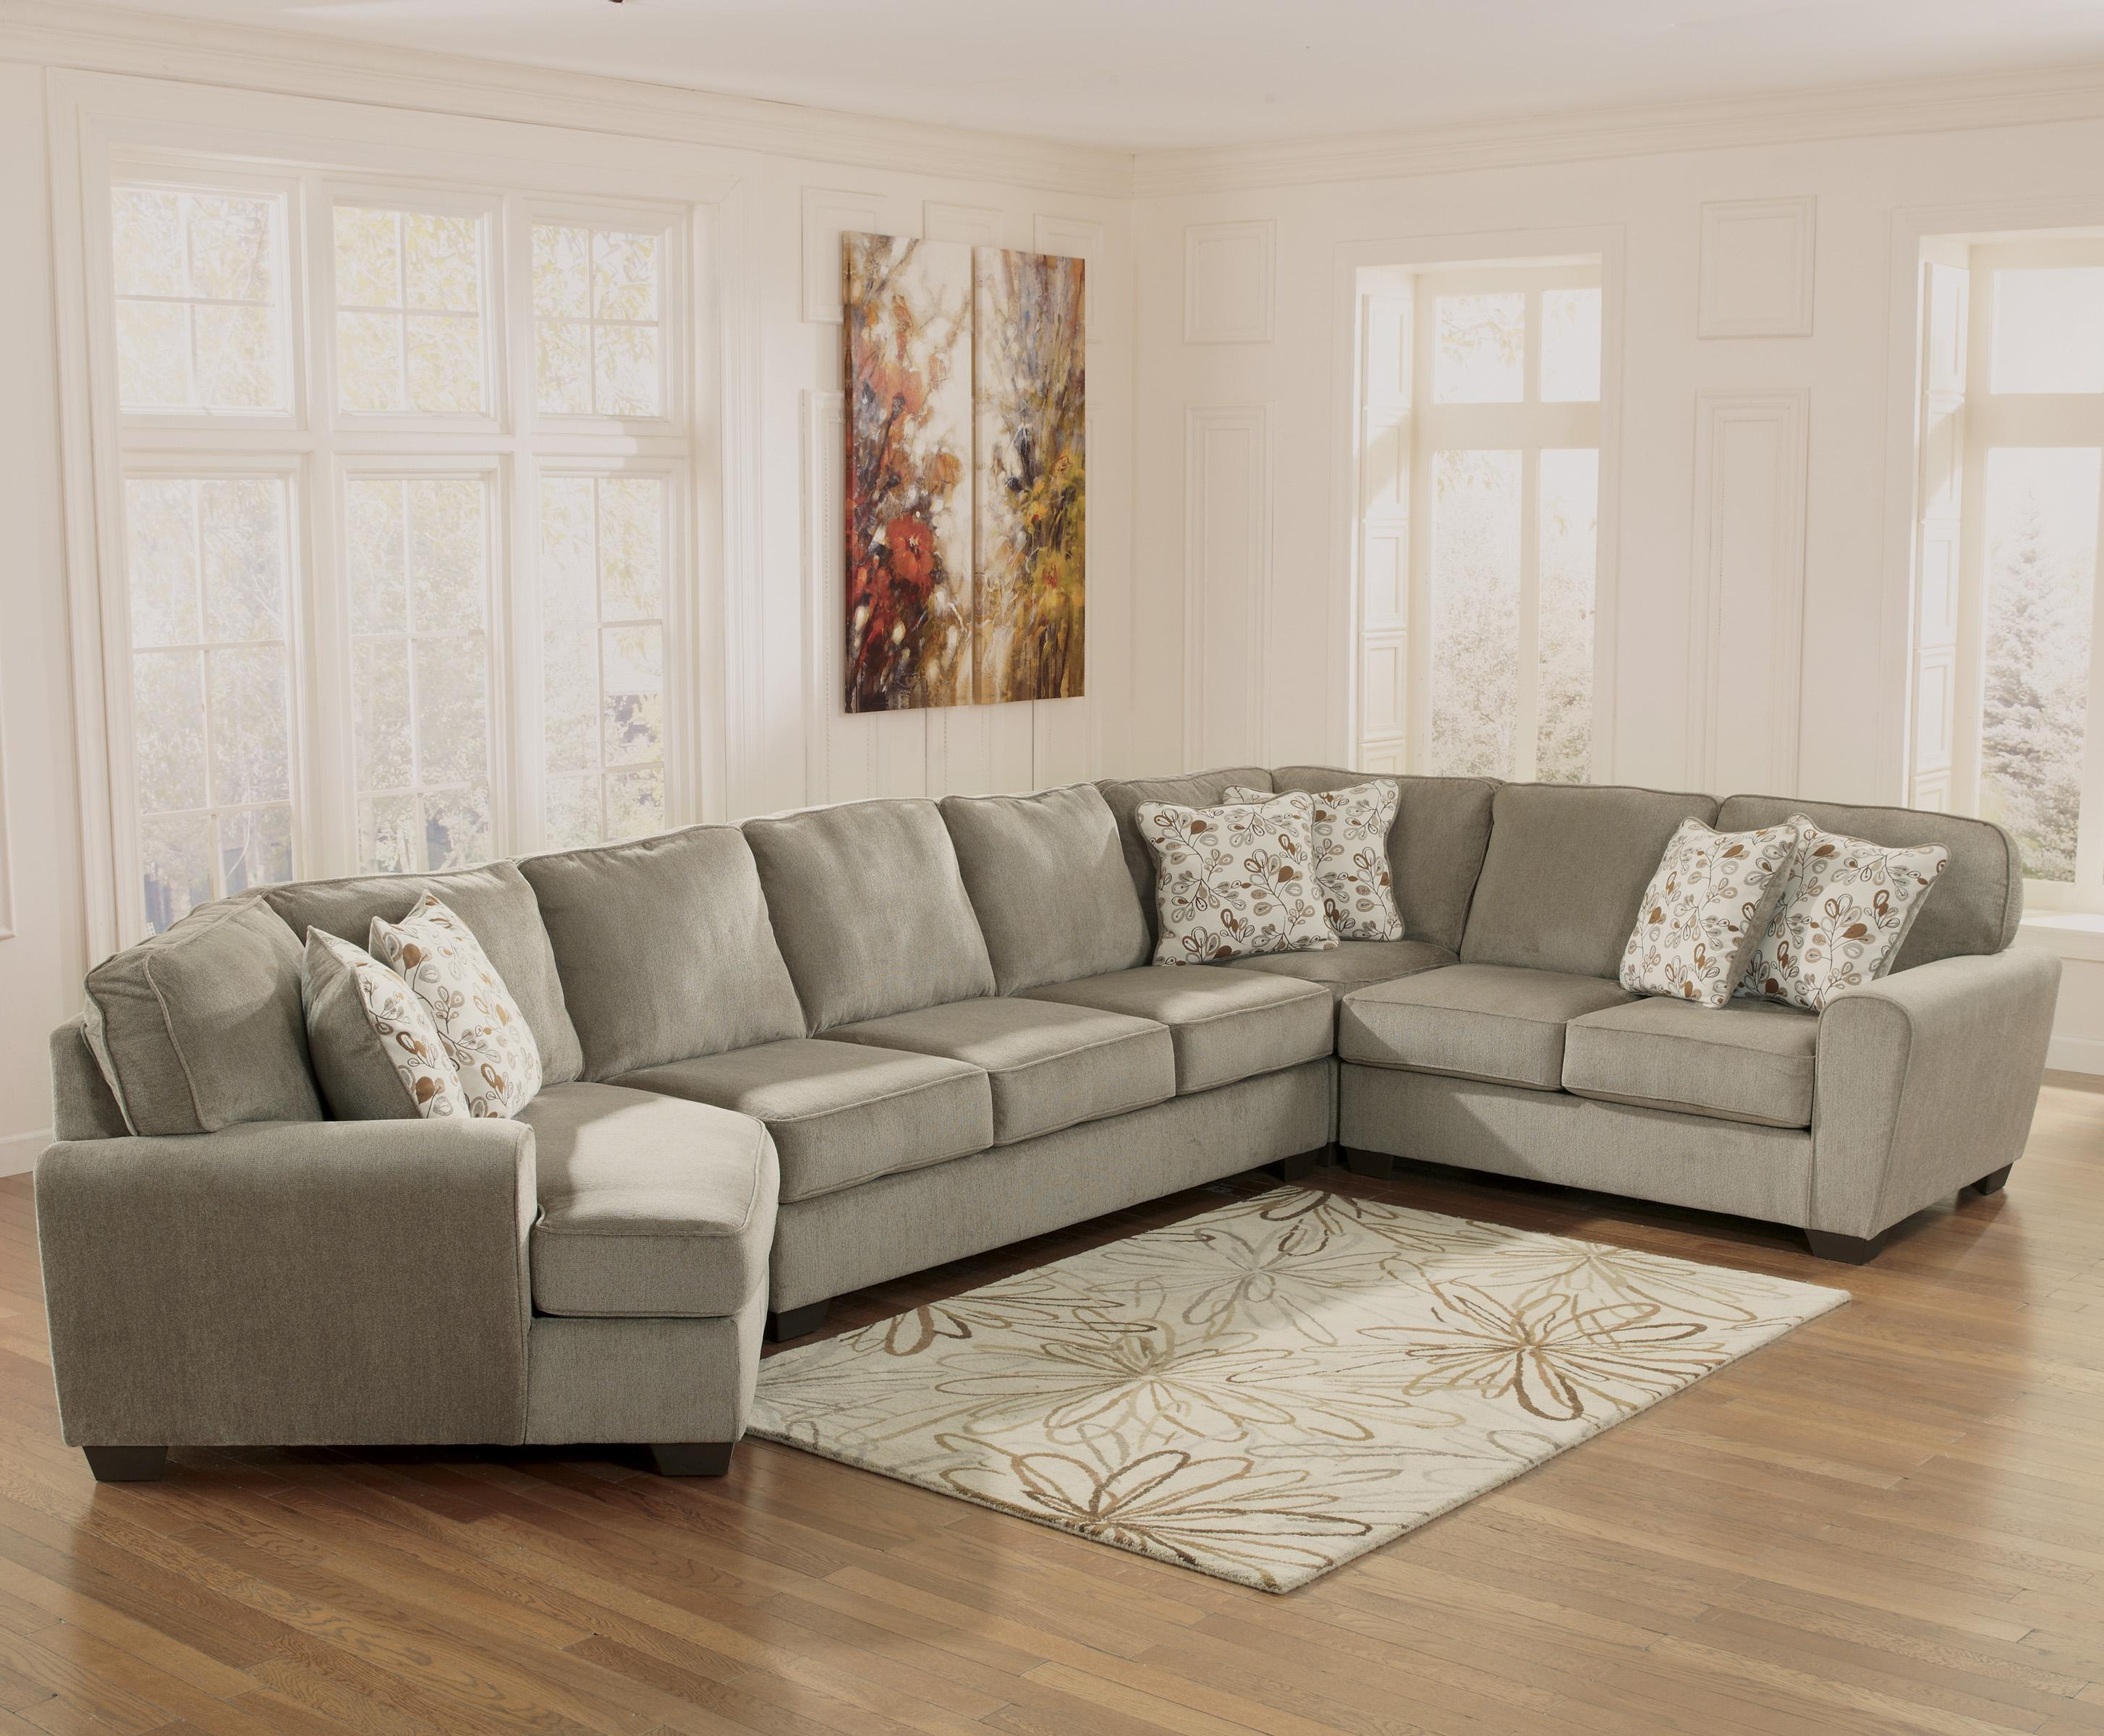 Ashley furniture patola park patina 4 piece sectional for Sectional sofa with cuddler and chaise